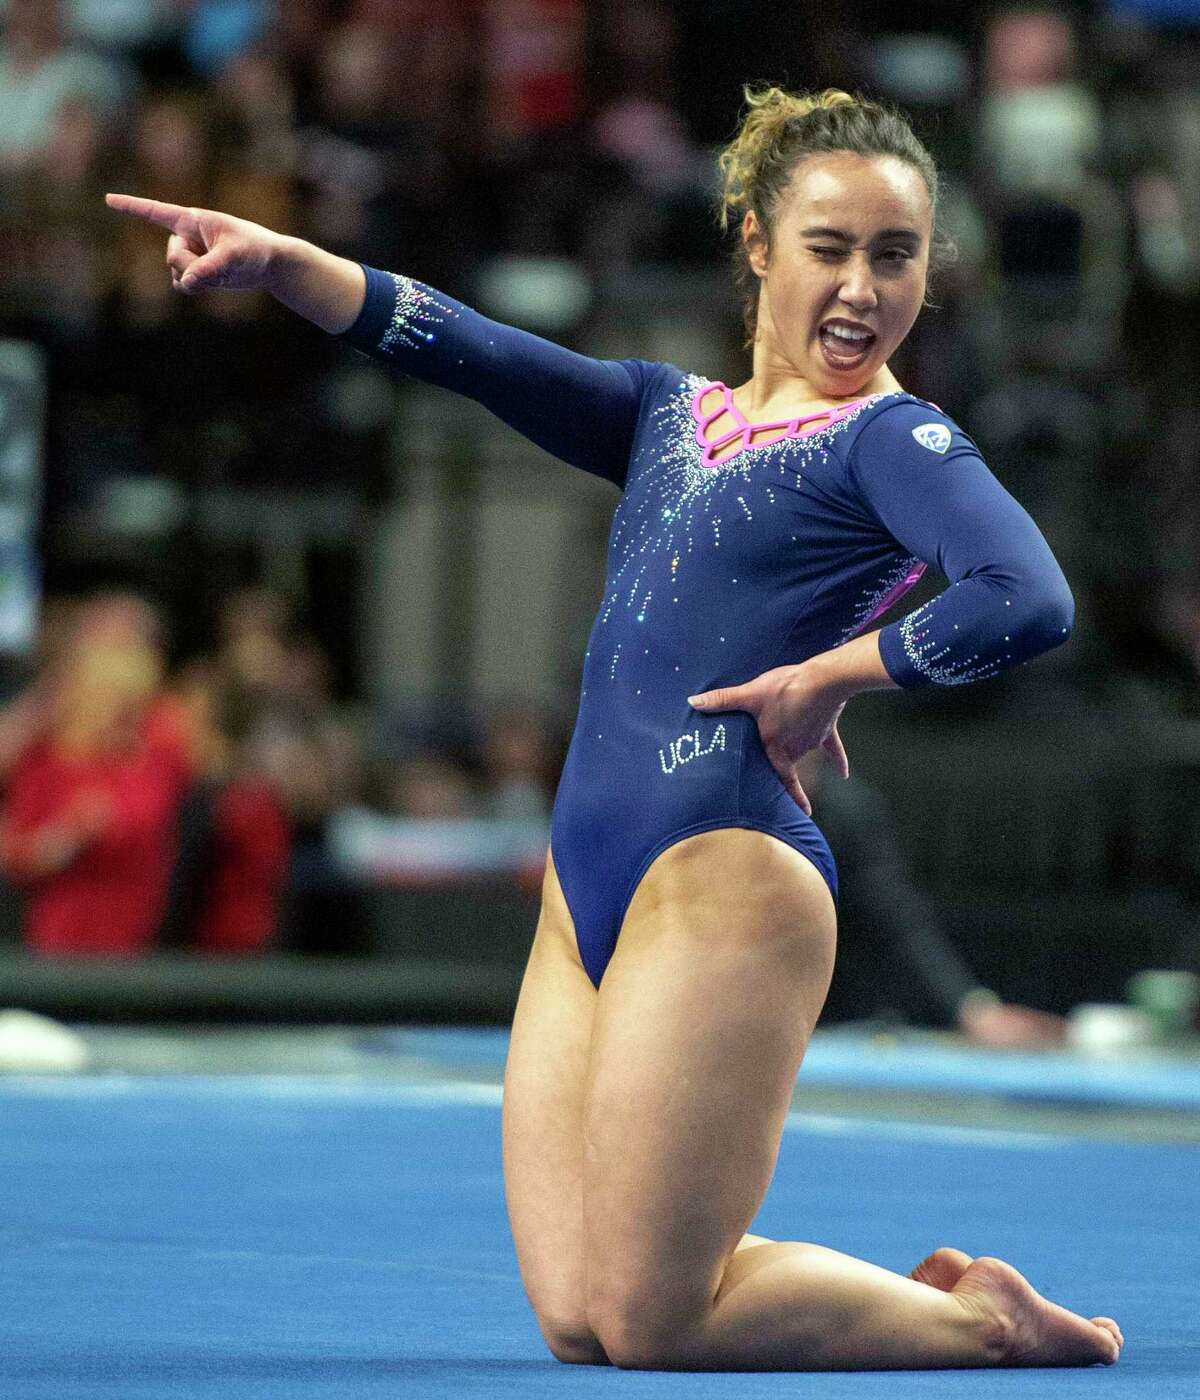 FILE - In this March 23, 2019, file photo, UCLA's Katelyn Ohashi competes on the floor, earning a 10, during the Pac-12 gymnastics championships in Salt Lake City. The former UCLA gymnast has committed to performing in the inaugural Aurora Games, an all-women's sports and entertainment festival. The Aurora Games will be held Aug. 20-25 in Albany, N.Y., and feature about 150 world-class athletes, including Olympic medalists and national champions.